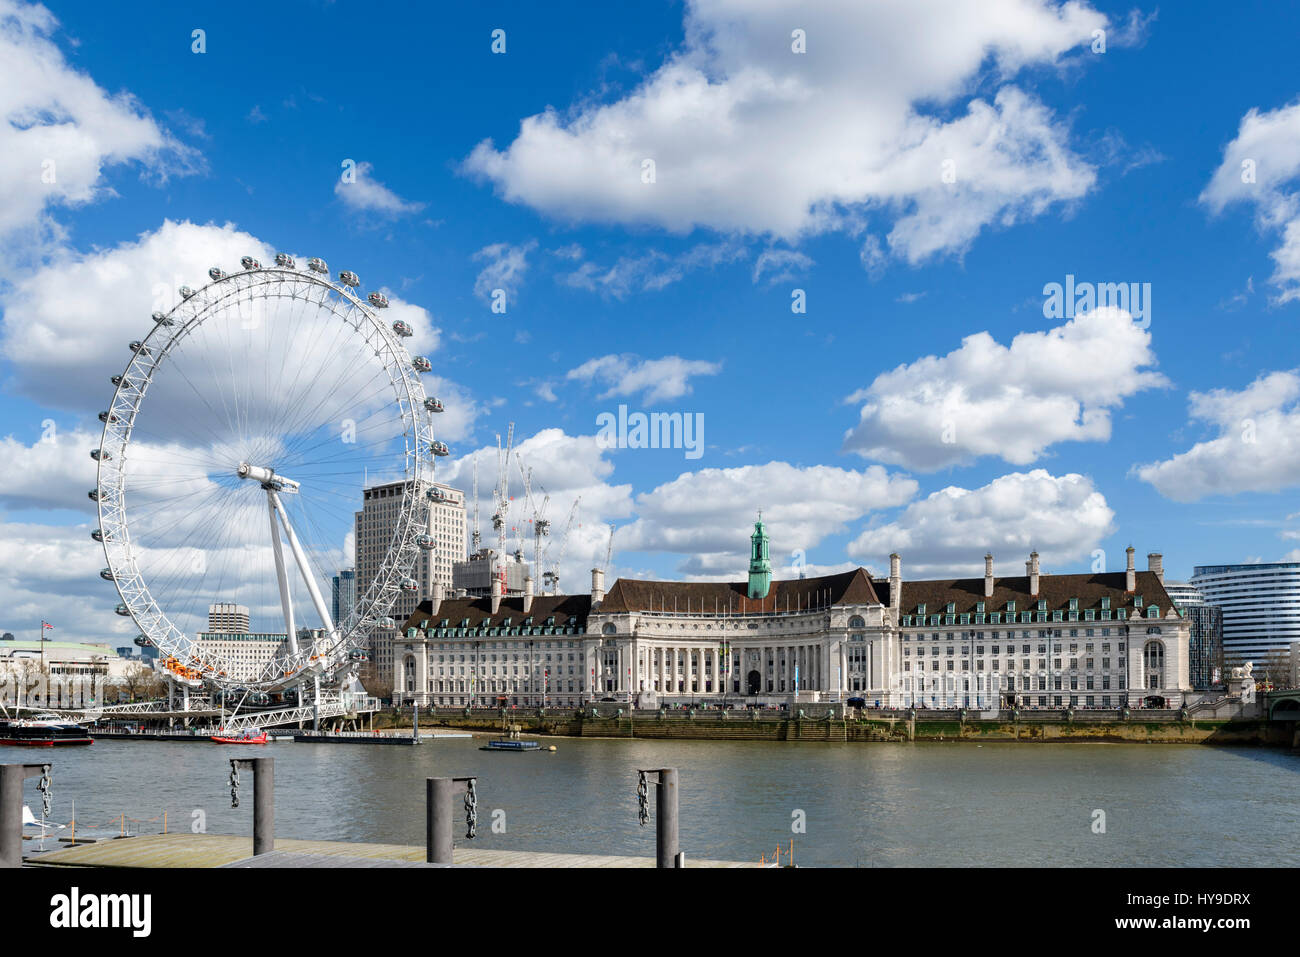 The London Eye and County Hall from Victoria Embankment, London, England, UK - Stock Image